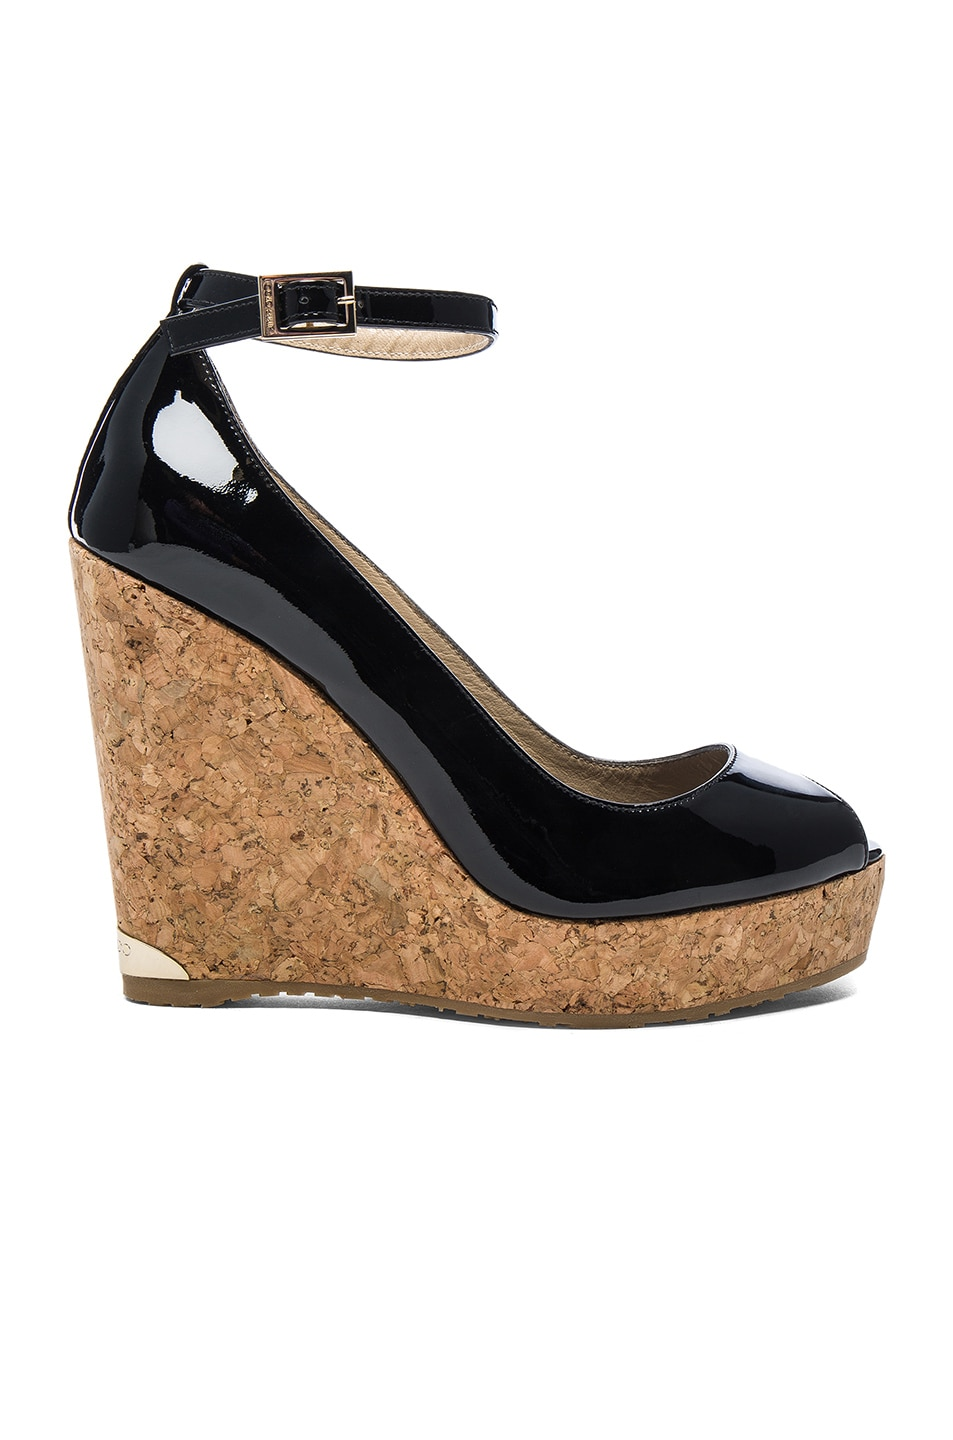 Image 1 of Jimmy Choo Pacific Wedge in Black